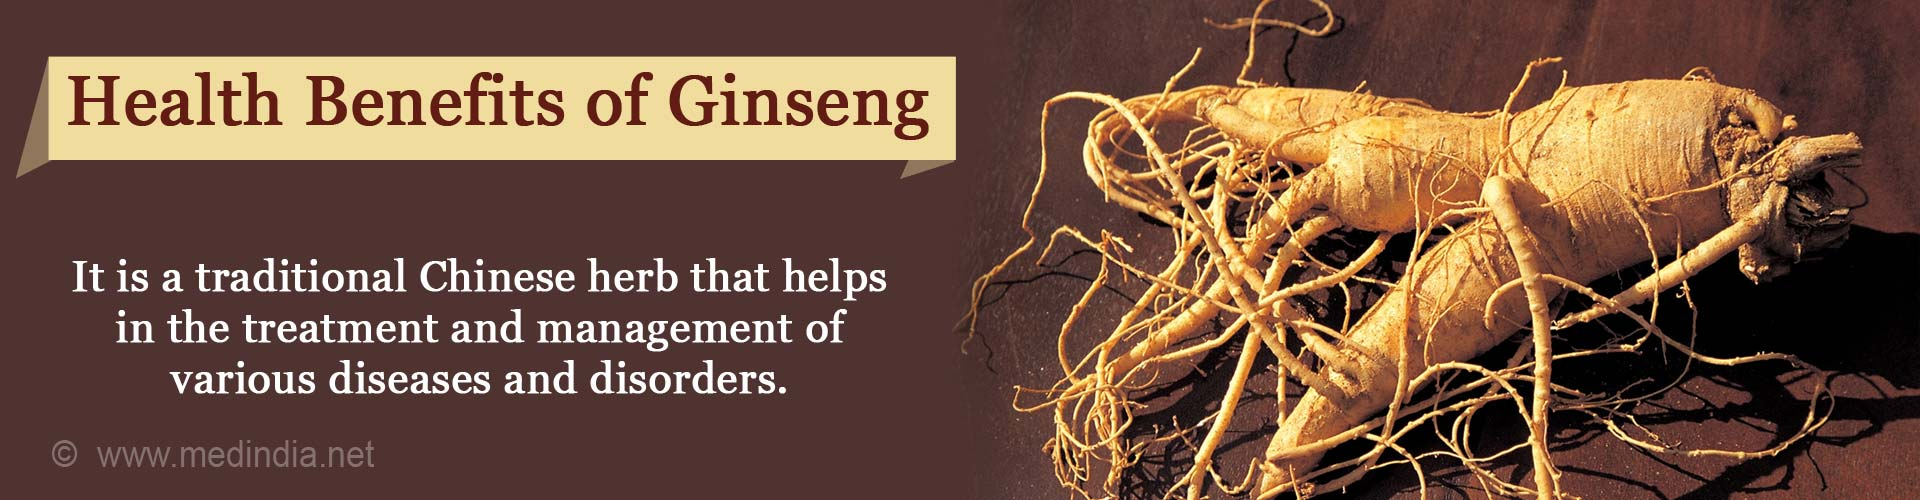 Health Benefits of Ginseng - It is a traditional Chinese herb that helps in the tratment and managment of various diseases and disorders